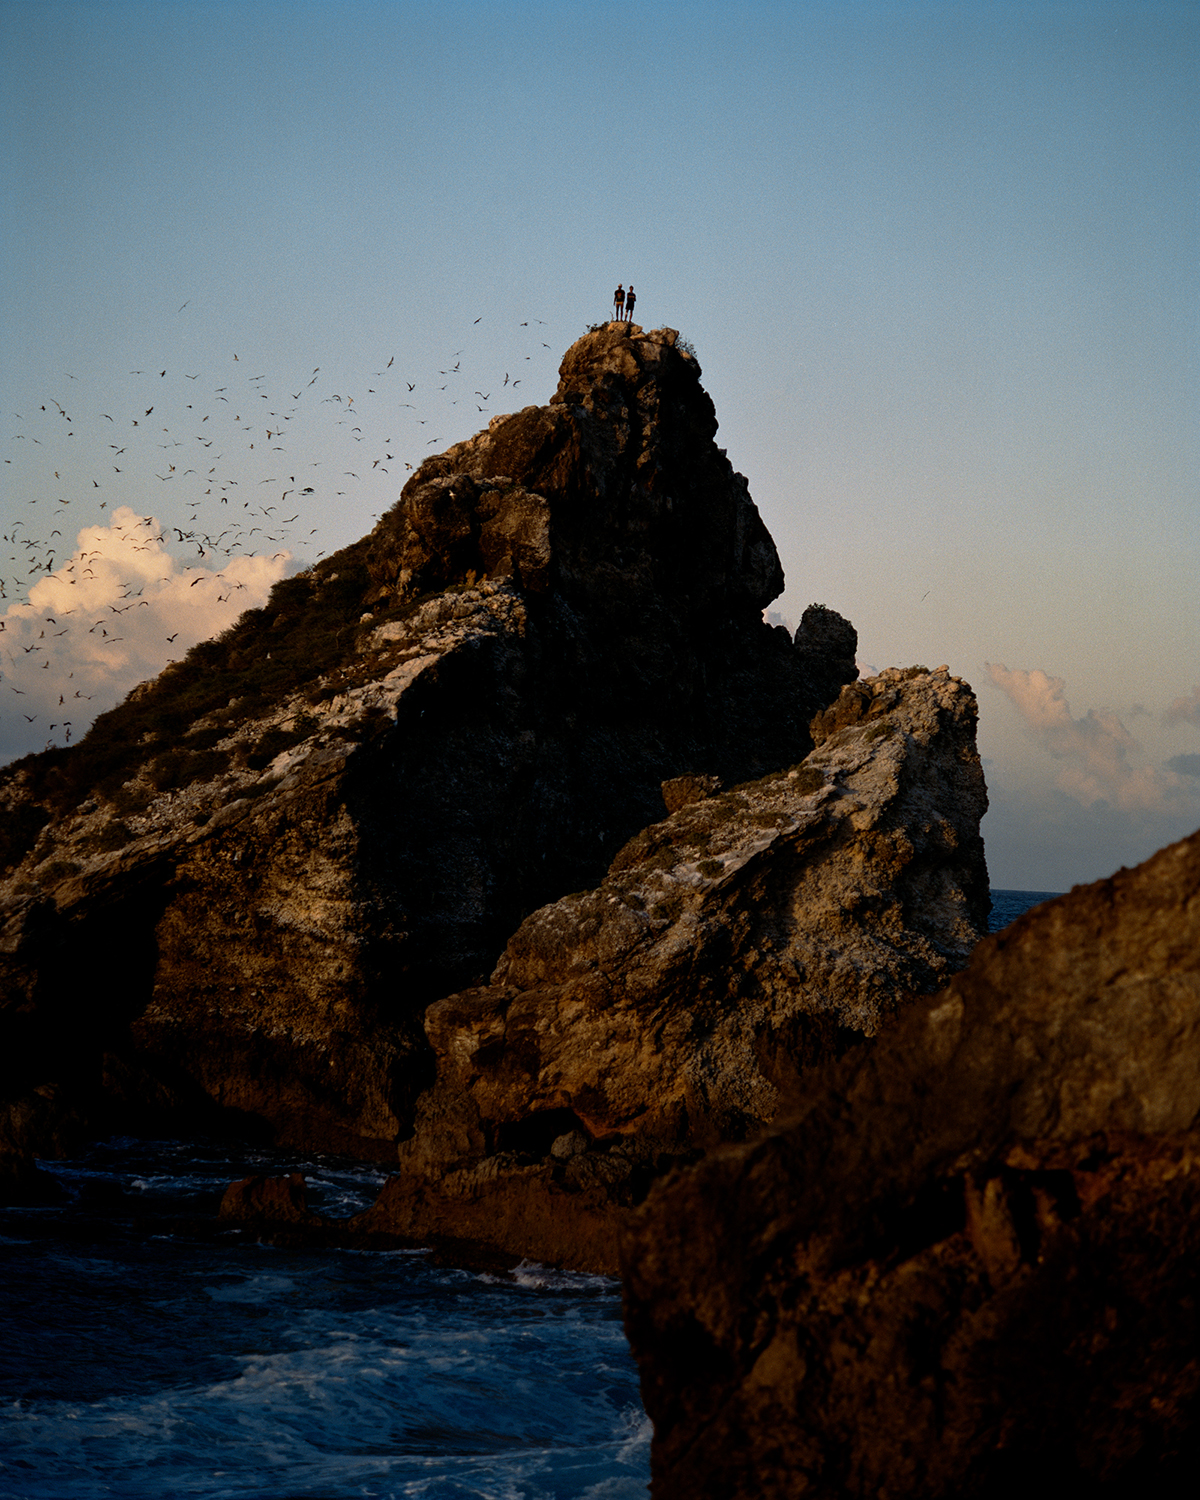 Two people stand on a mountain near water, with a throng of birds flying around.